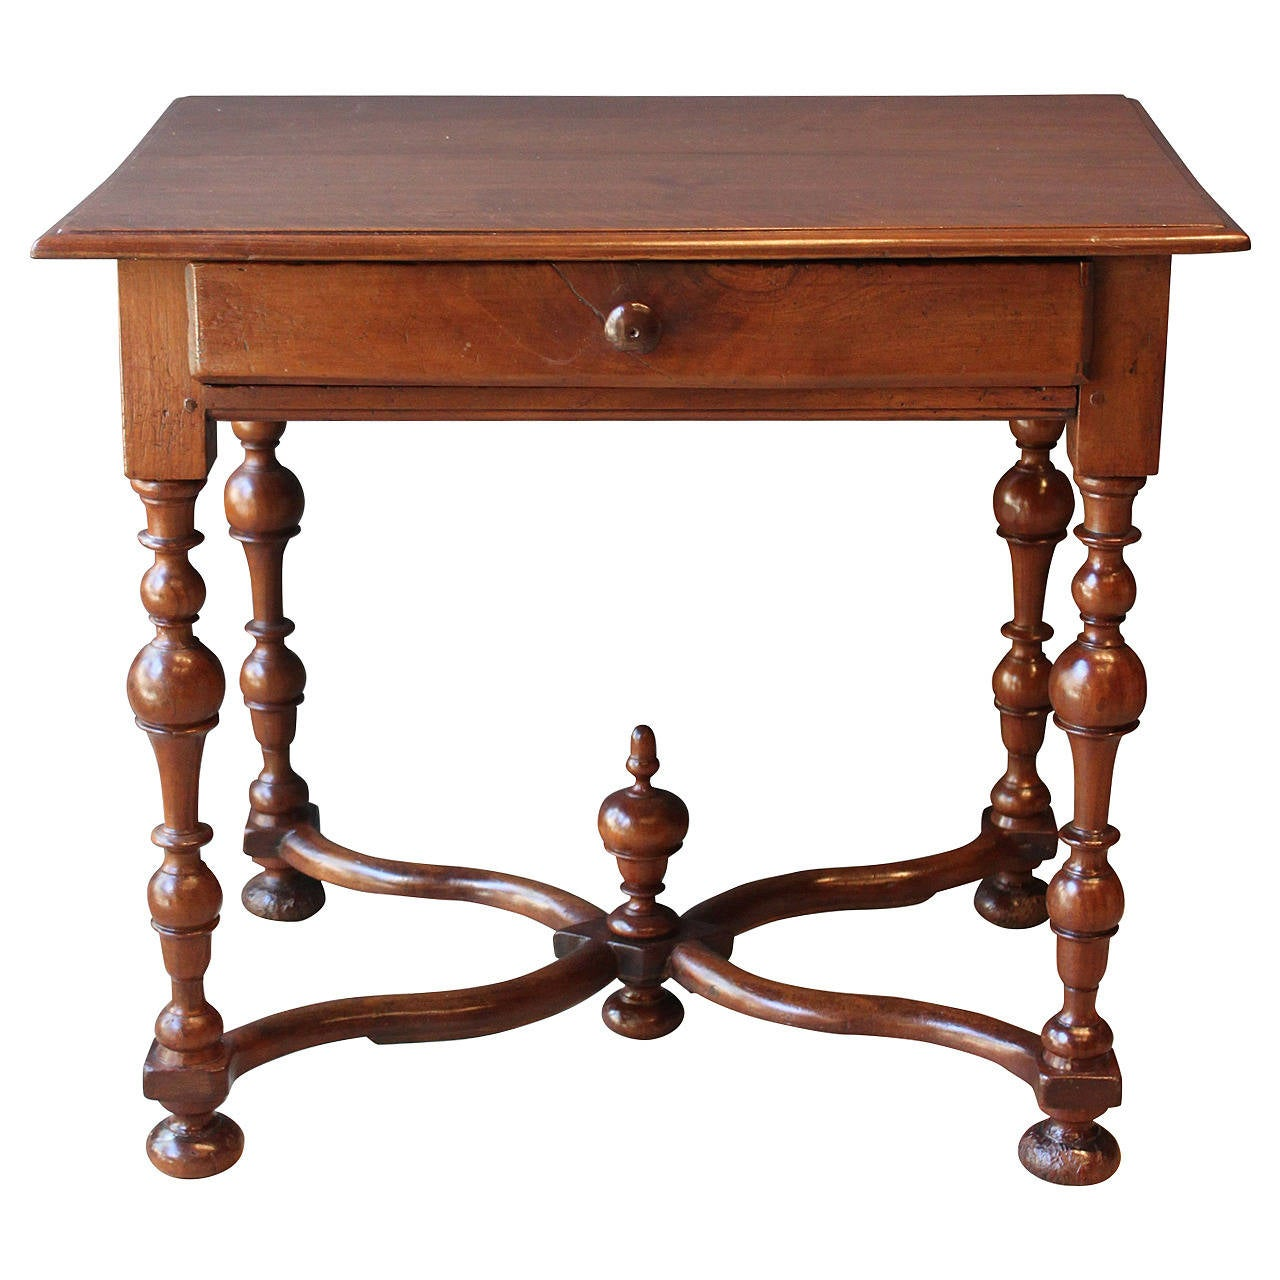 louis xiii style walnut side table with x stretcher. Black Bedroom Furniture Sets. Home Design Ideas